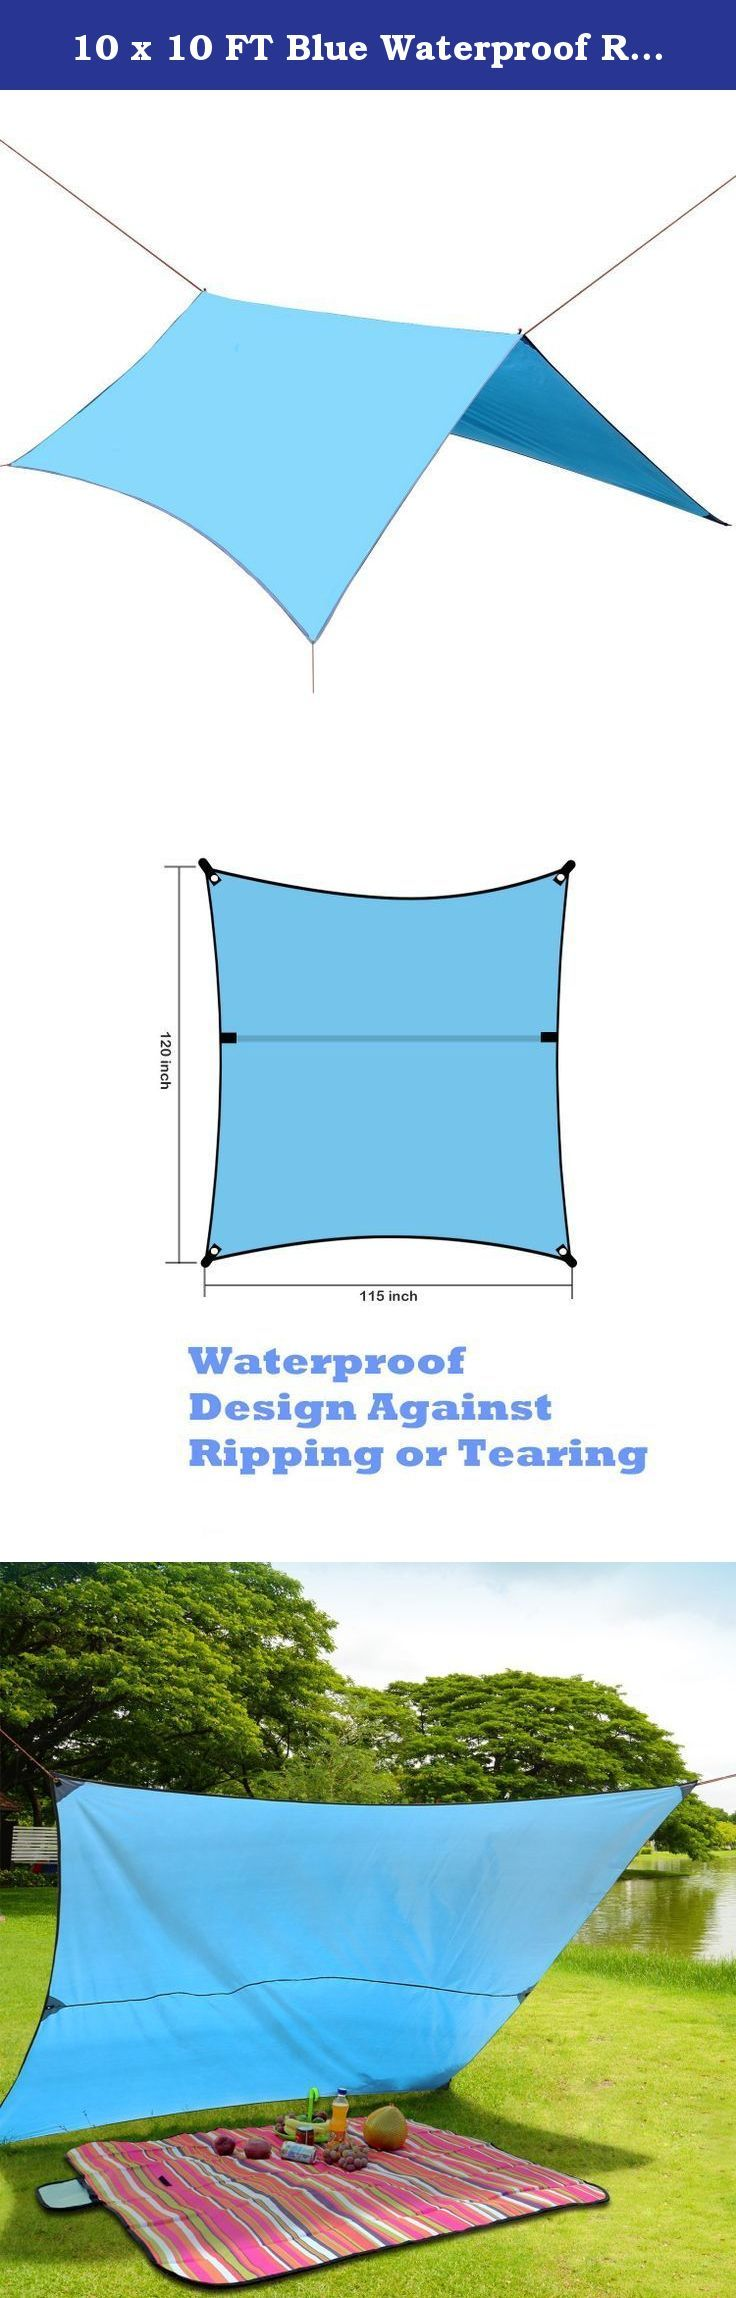 10 x 10 FT Blue Waterproof RipStop Rain Fly Hammock Tarp Cover Tent Shelter for Camping Outdoor Travel. Specifications: Direct manufacturers, 100% High quality assurance. Material: 210T Dacron Color: light blue Net Weight: 1.86lbs Unfolded size: 10 FT*10 FT Features: It's a very large fly tarp good for outdoor activitives. You can use it for:Camping Rain Tarp Shelter,Backpack Tent Tarp,Shade Tarp,Hammock Tent, Picnic Mat, Beach Blanket and so on. It comes with everything you will need to…